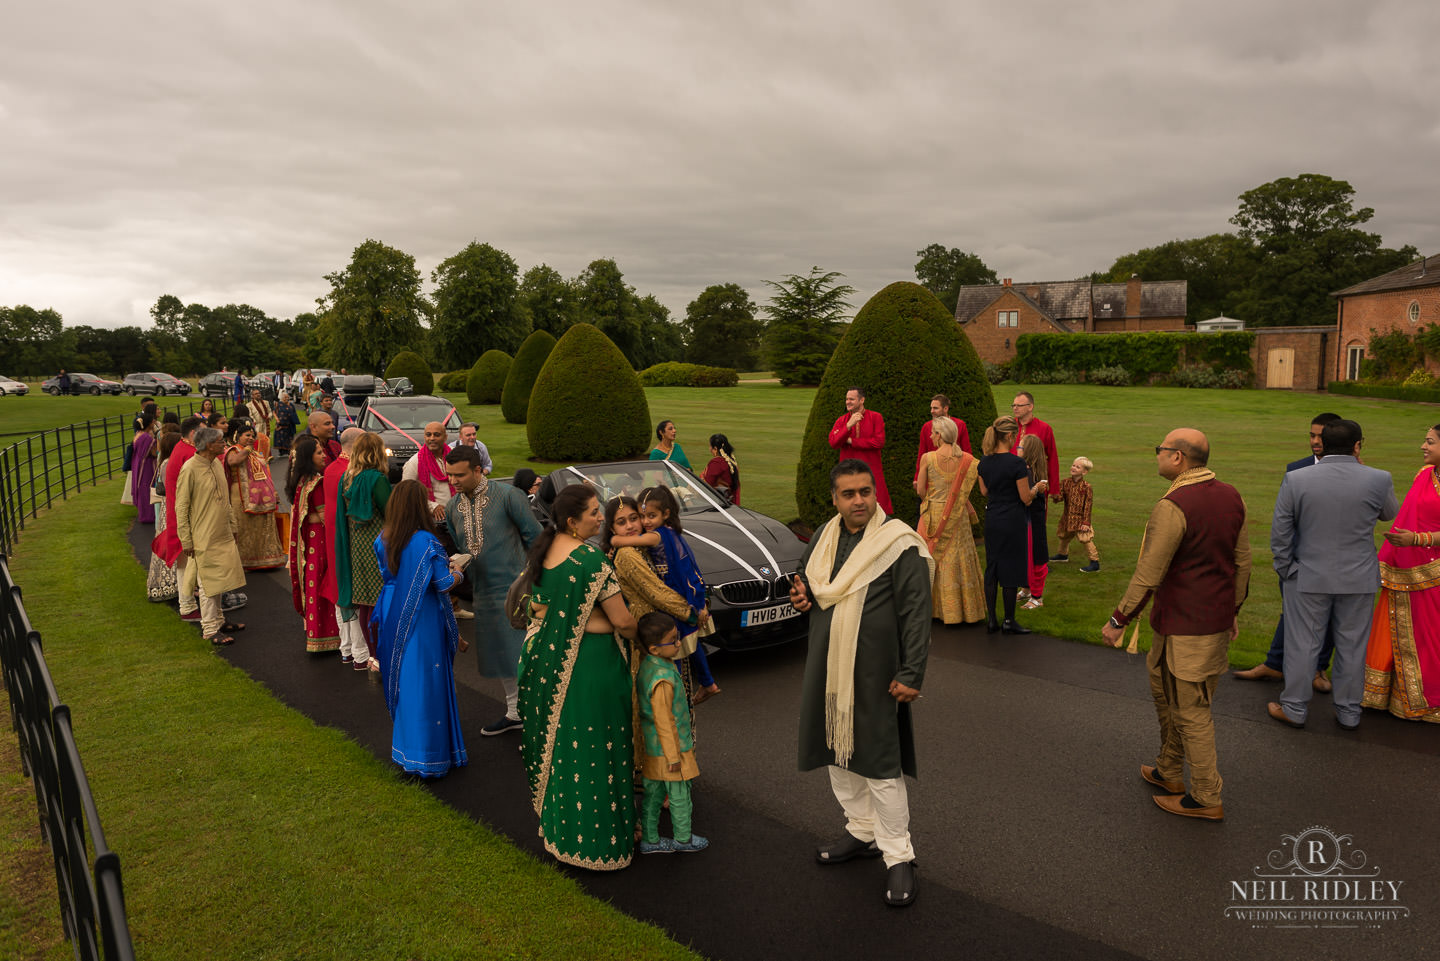 Merrydale Manor Wedding Photographer - The Baraat about to start